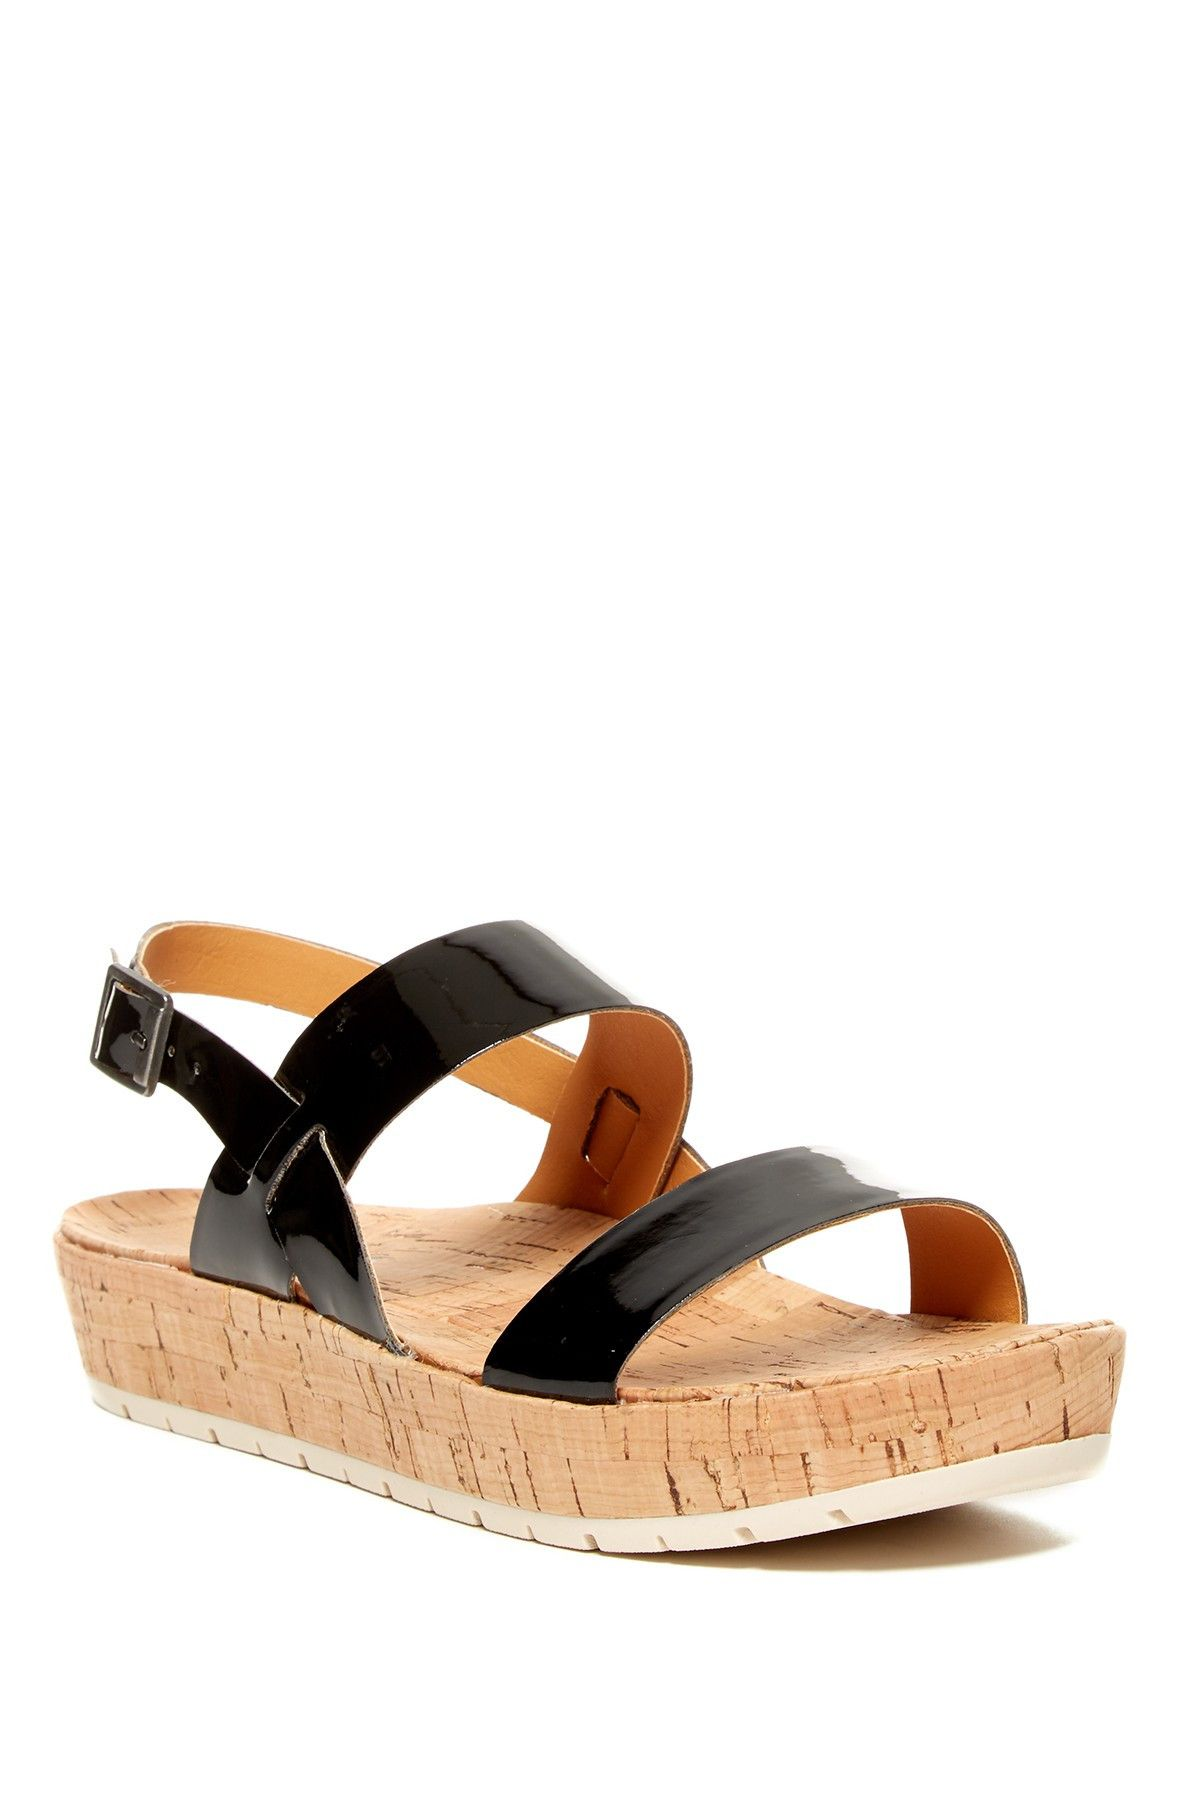 KORKS - Janine Flatform Sandal at Nordstrom Rack. Free Shipping on orders  over $100.